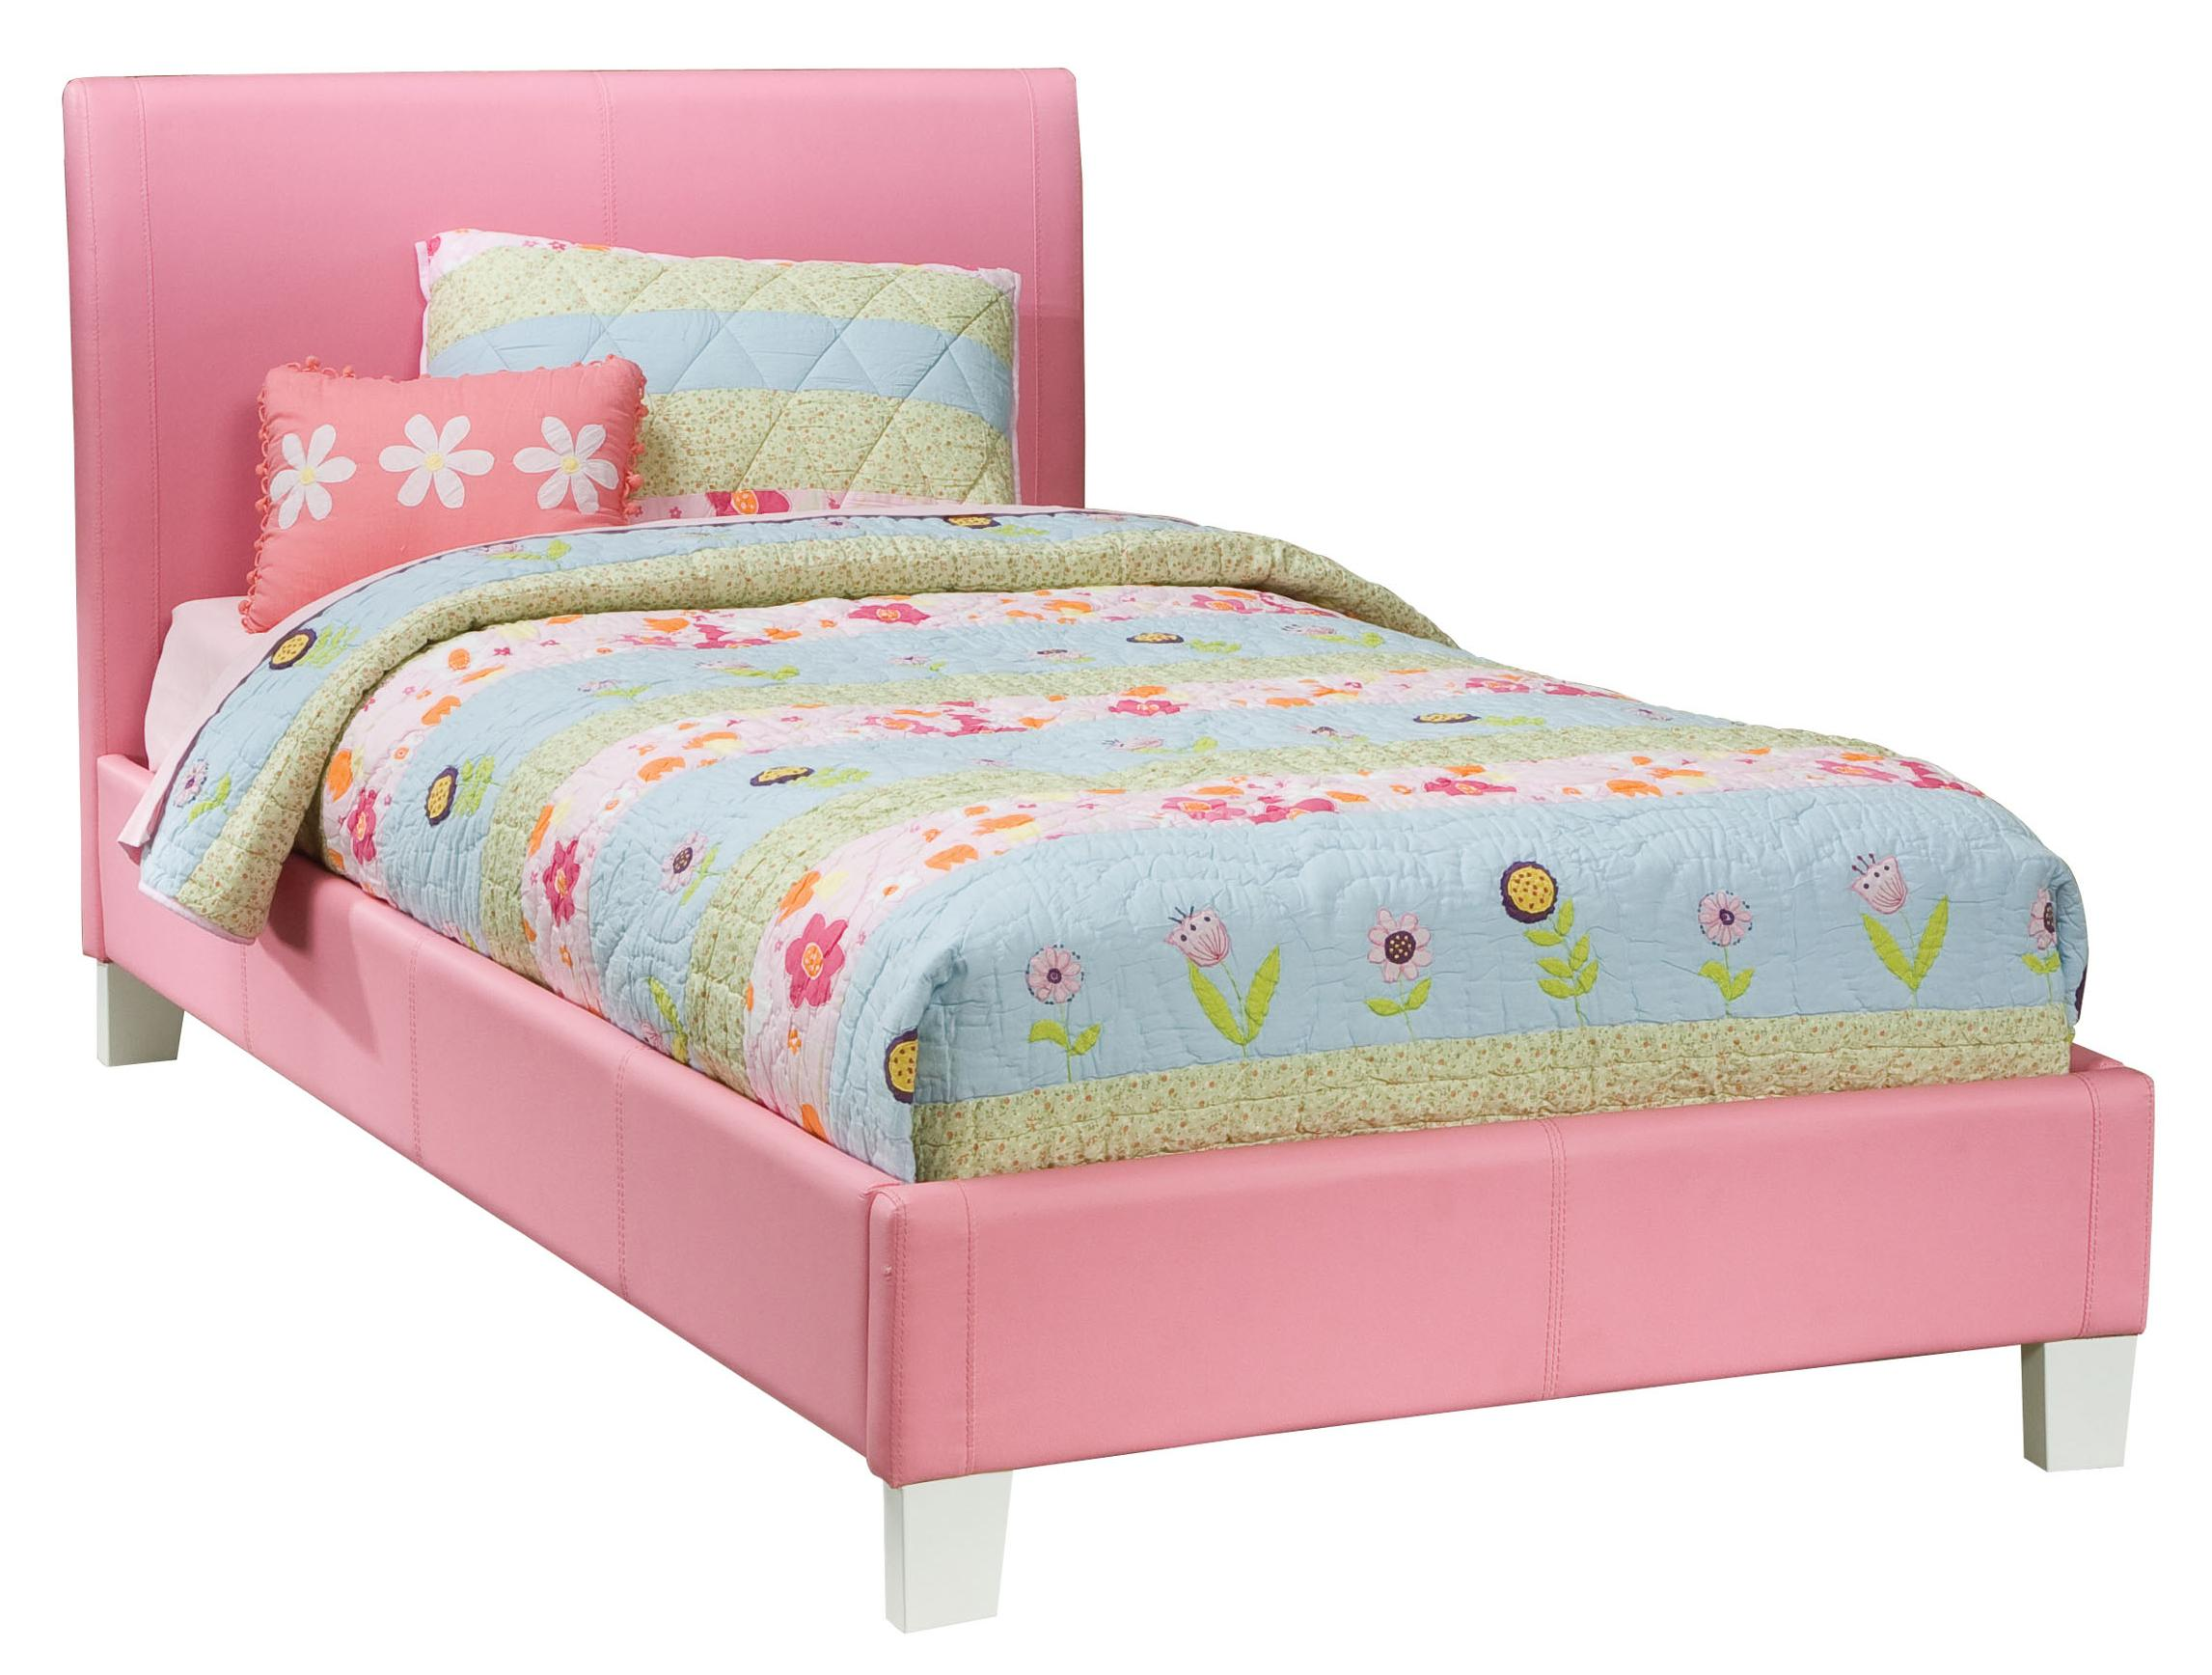 Standard Furniture Fantasia Full Upholstered Bed - Item Number: 60752+62